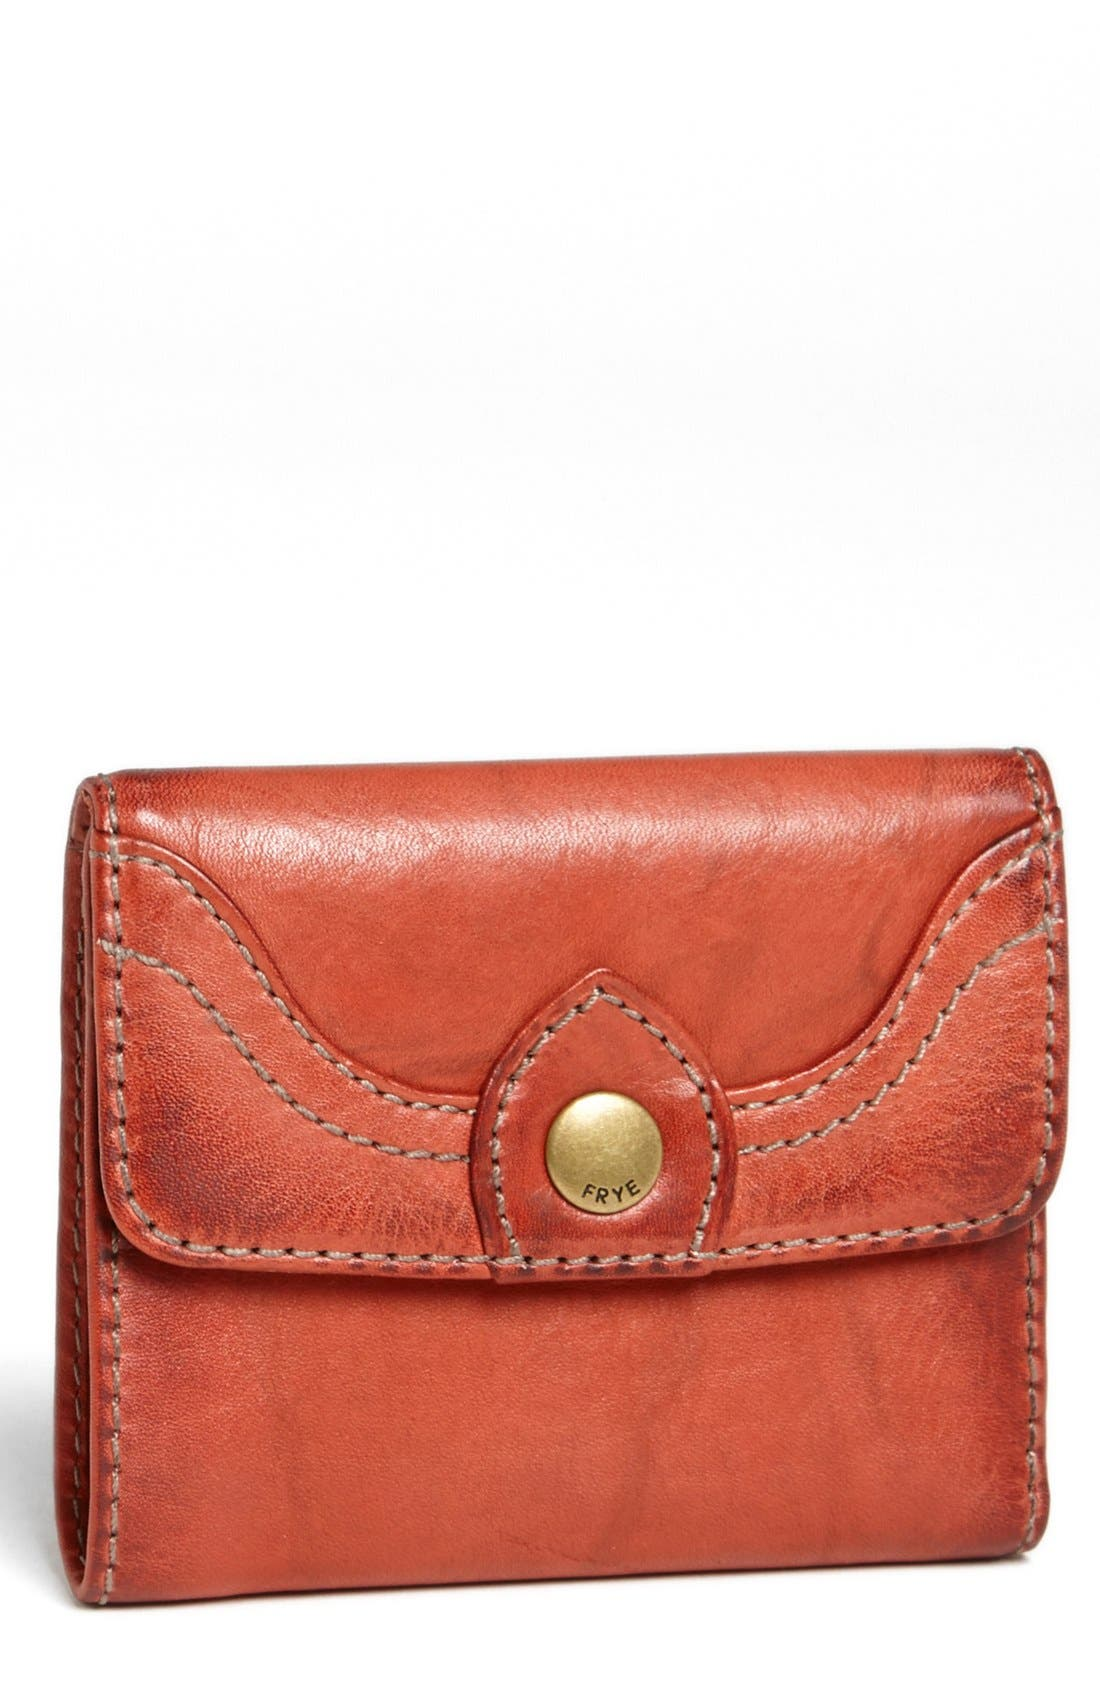 Alternate Image 1 Selected - Frye 'Campus - Small' Leather Wallet